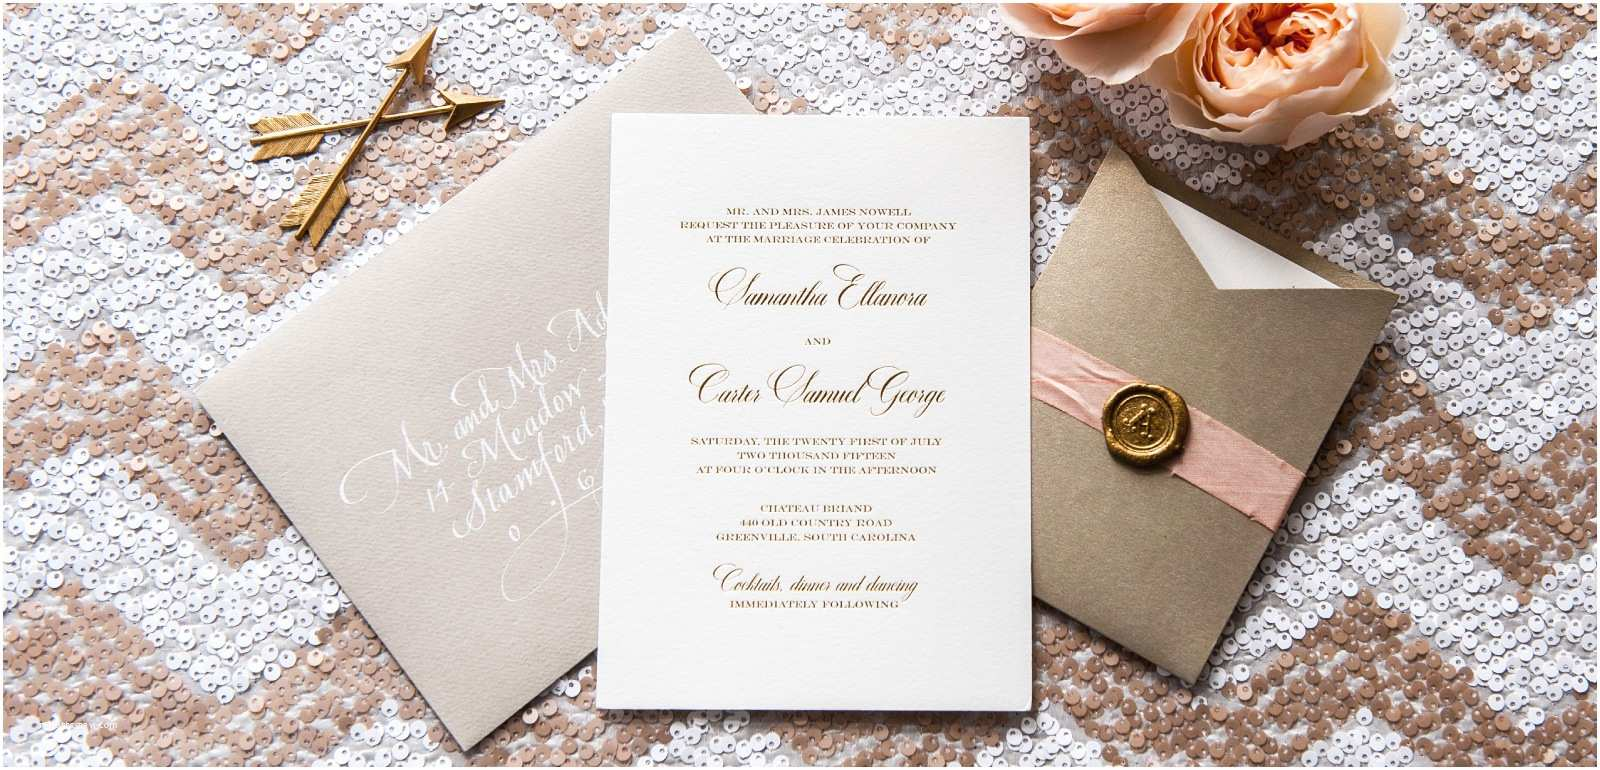 How to Design Your Own Wedding Invitations Make Your Own Wedding Invitations Uk